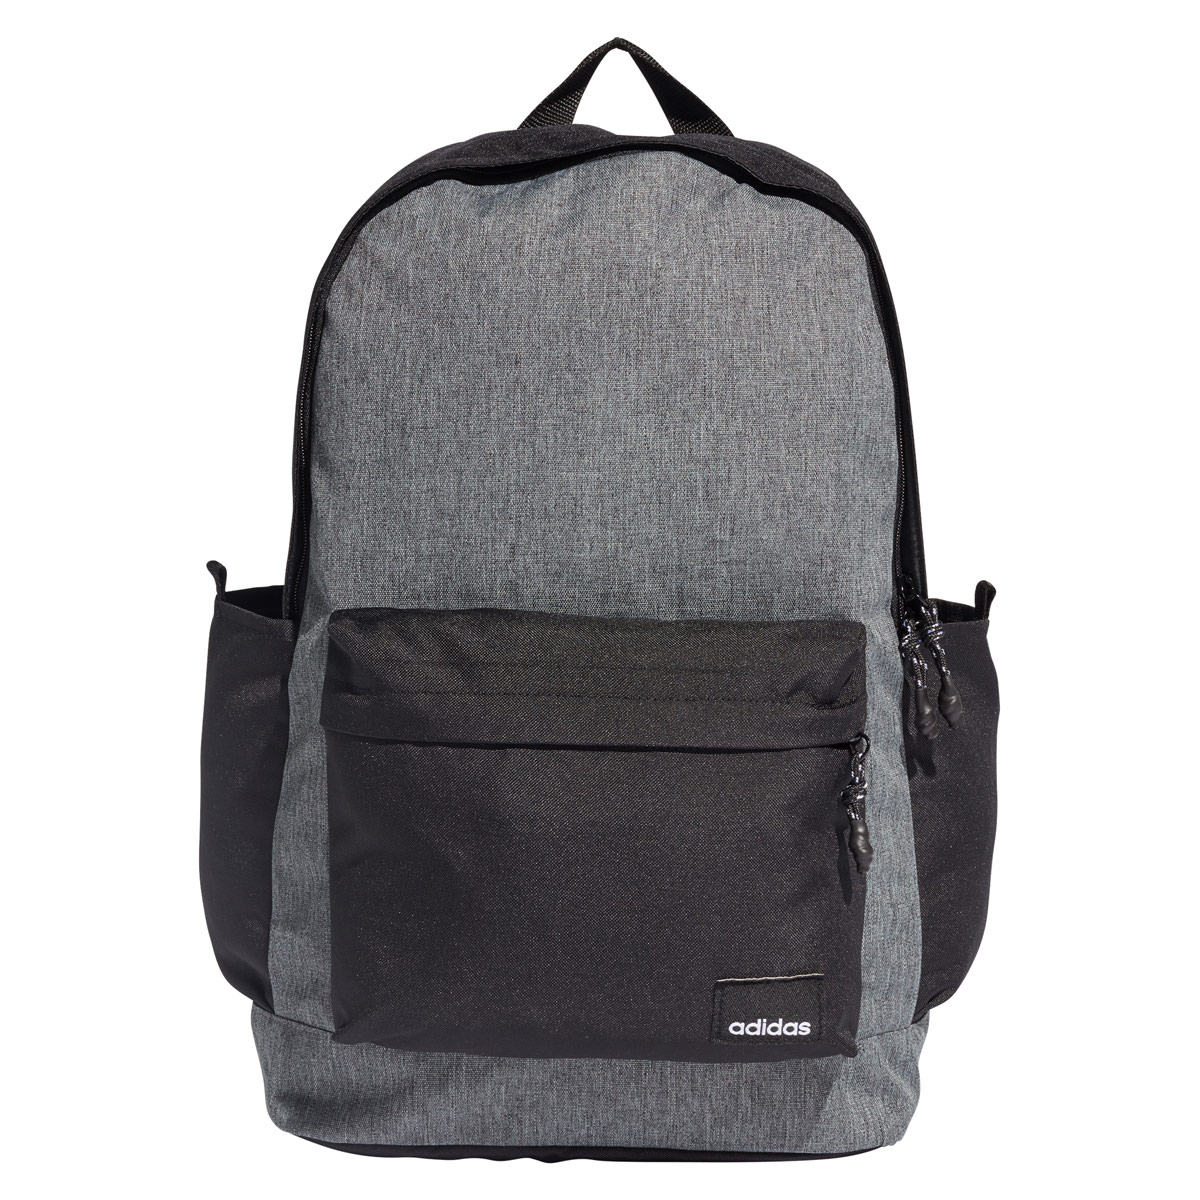 8f5d934b168f adidas Daily XL Backpack - Backpacks for Men - Grey